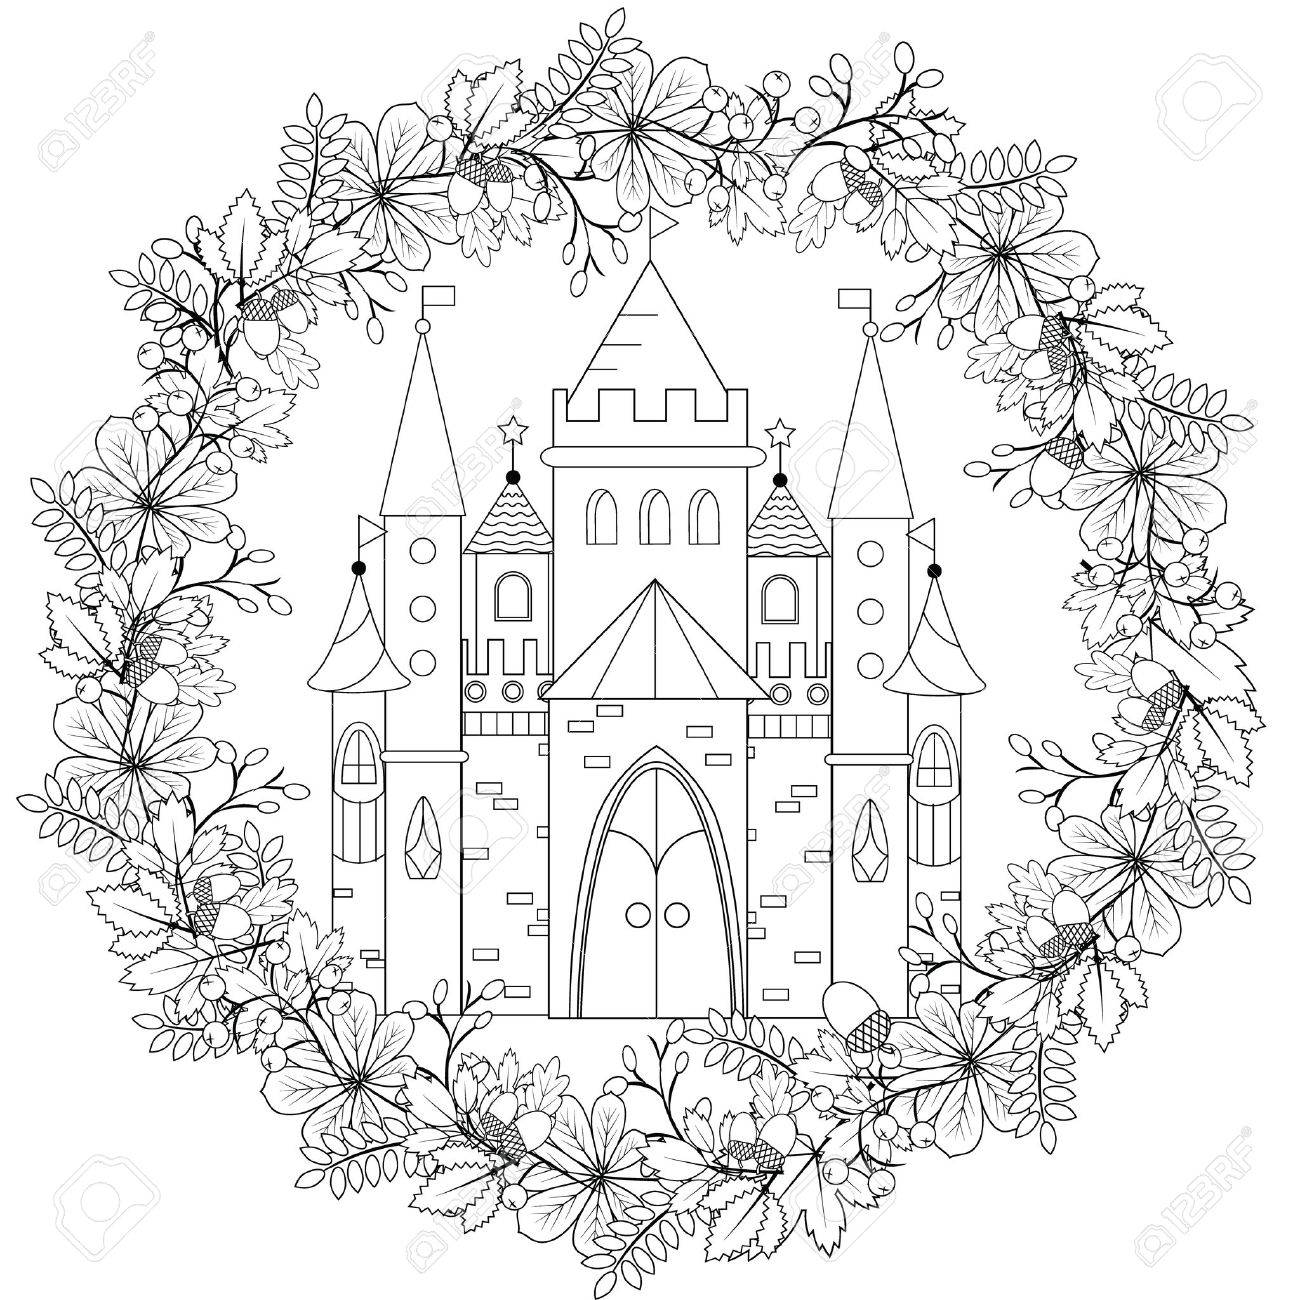 relaxing coloring page with fairy castle in forest wreath for kids and adult art therapy - Free Relaxing Coloring Pages